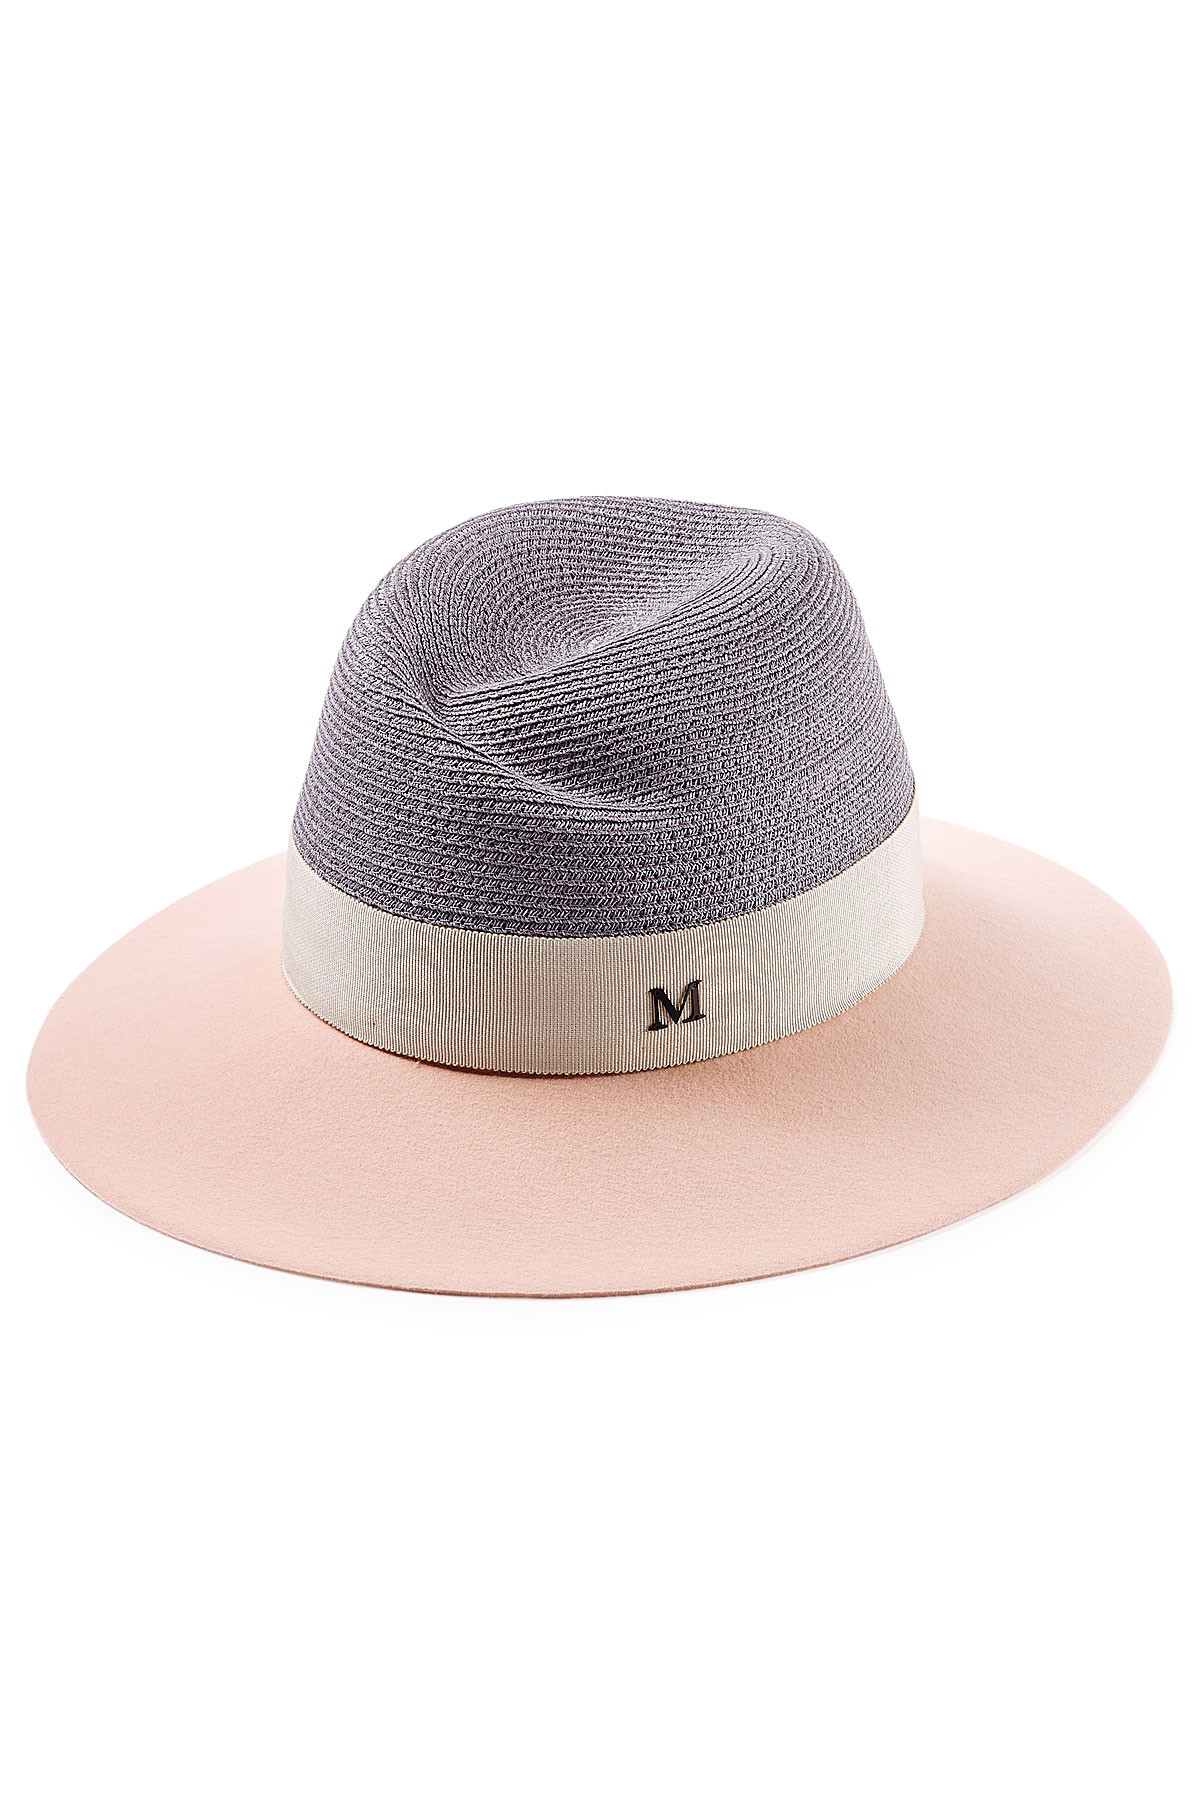 Lyst - Maison Michel Virginie Felt And Straw Hat in Pink 0655ed6e6f0d